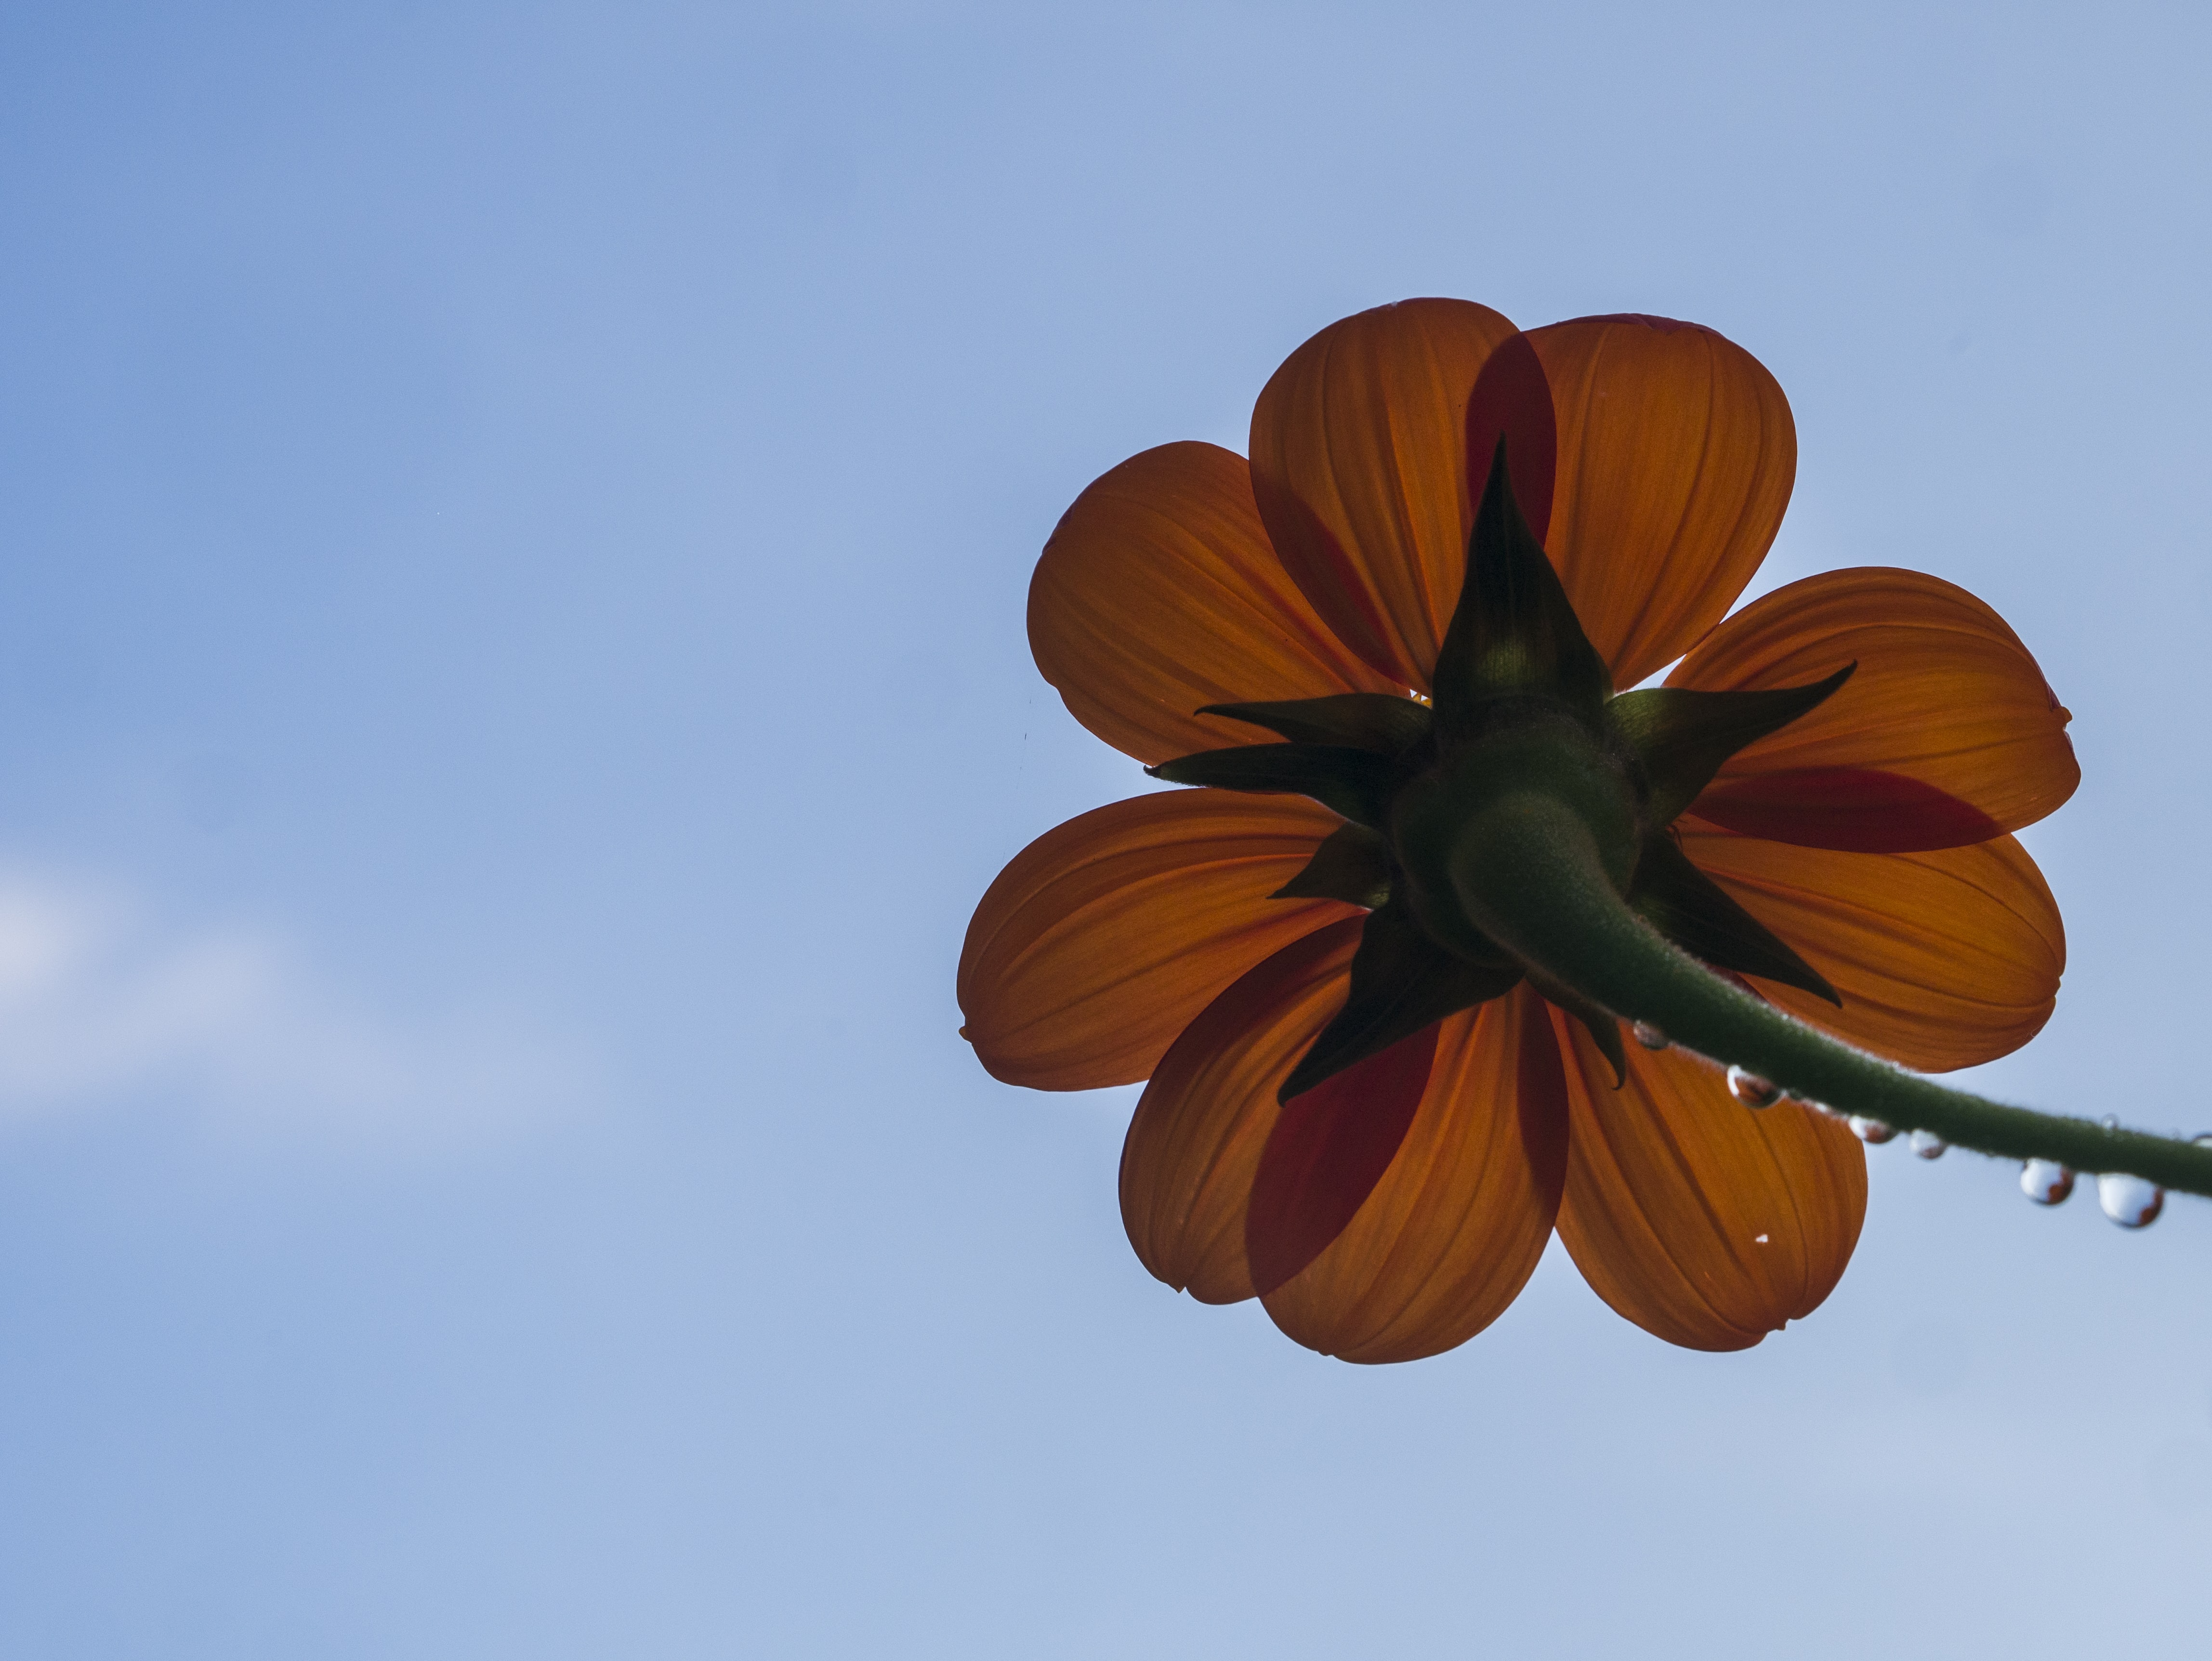 Looking up at an orange flower with water droplets on the stem